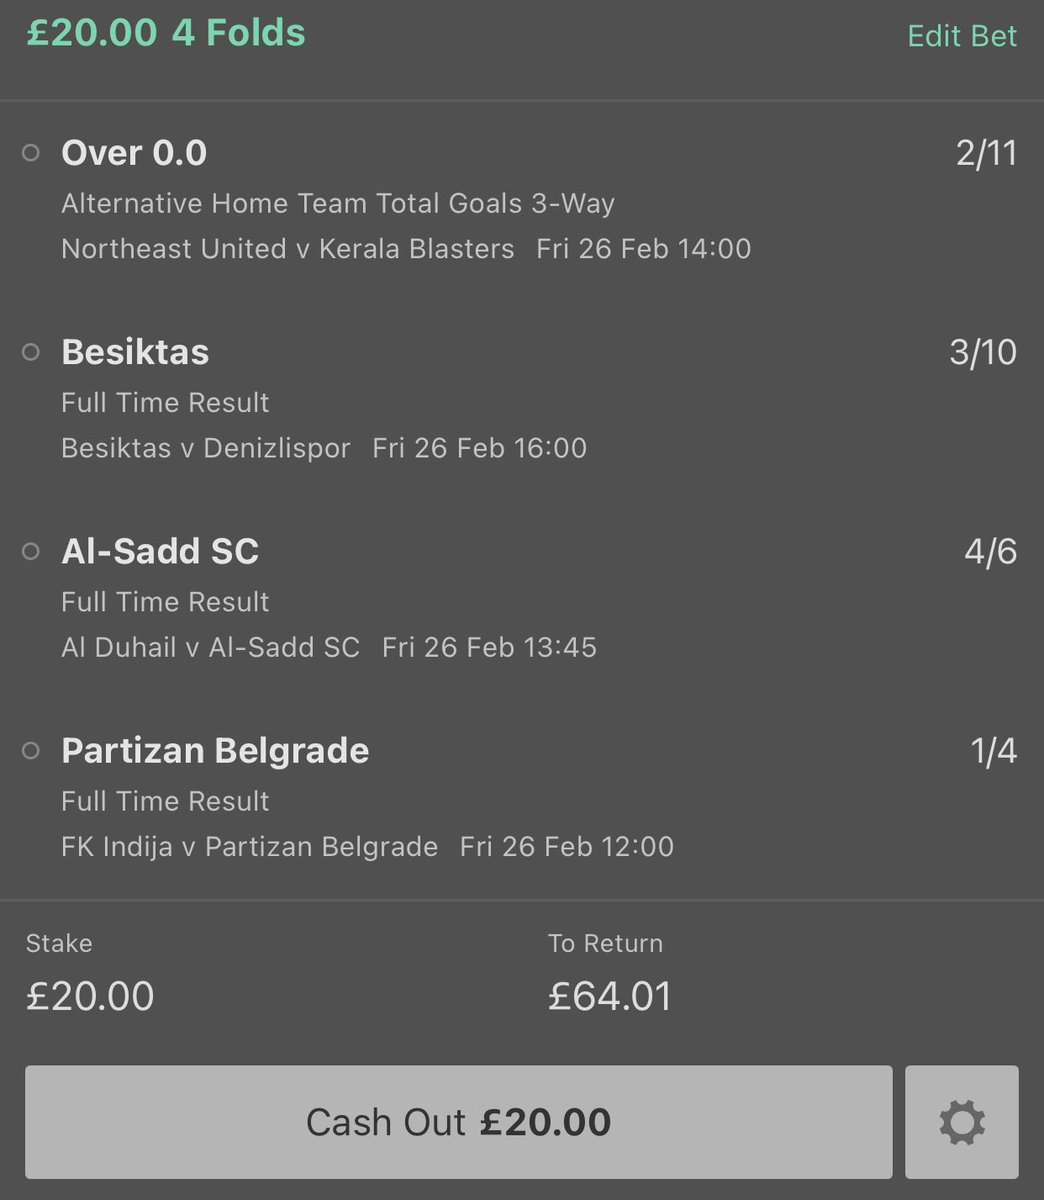 Afternoon Banker 💰  North East Utd to score 🇮🇳  Besiktas to win 🇹🇷  Al-Sadd to win 🇶🇦  Partizan Belgrade to win 🇷🇸   Like and follow if you're on ❤️  #inplay #betting #tips #football